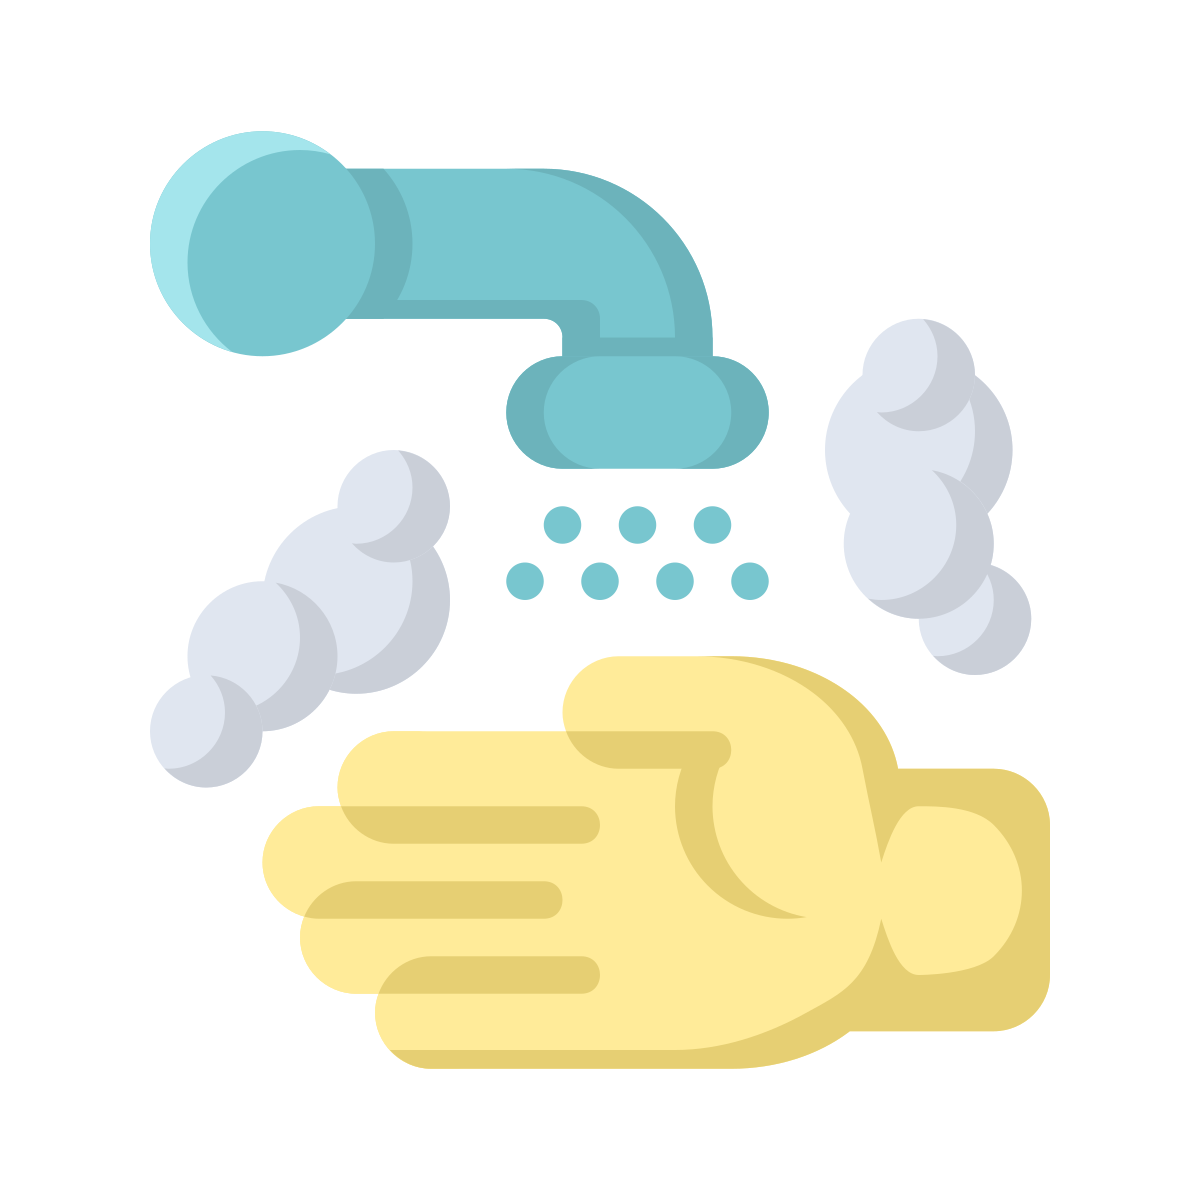 coronavirus  hands  hand  covid19  washing  wash icon icon